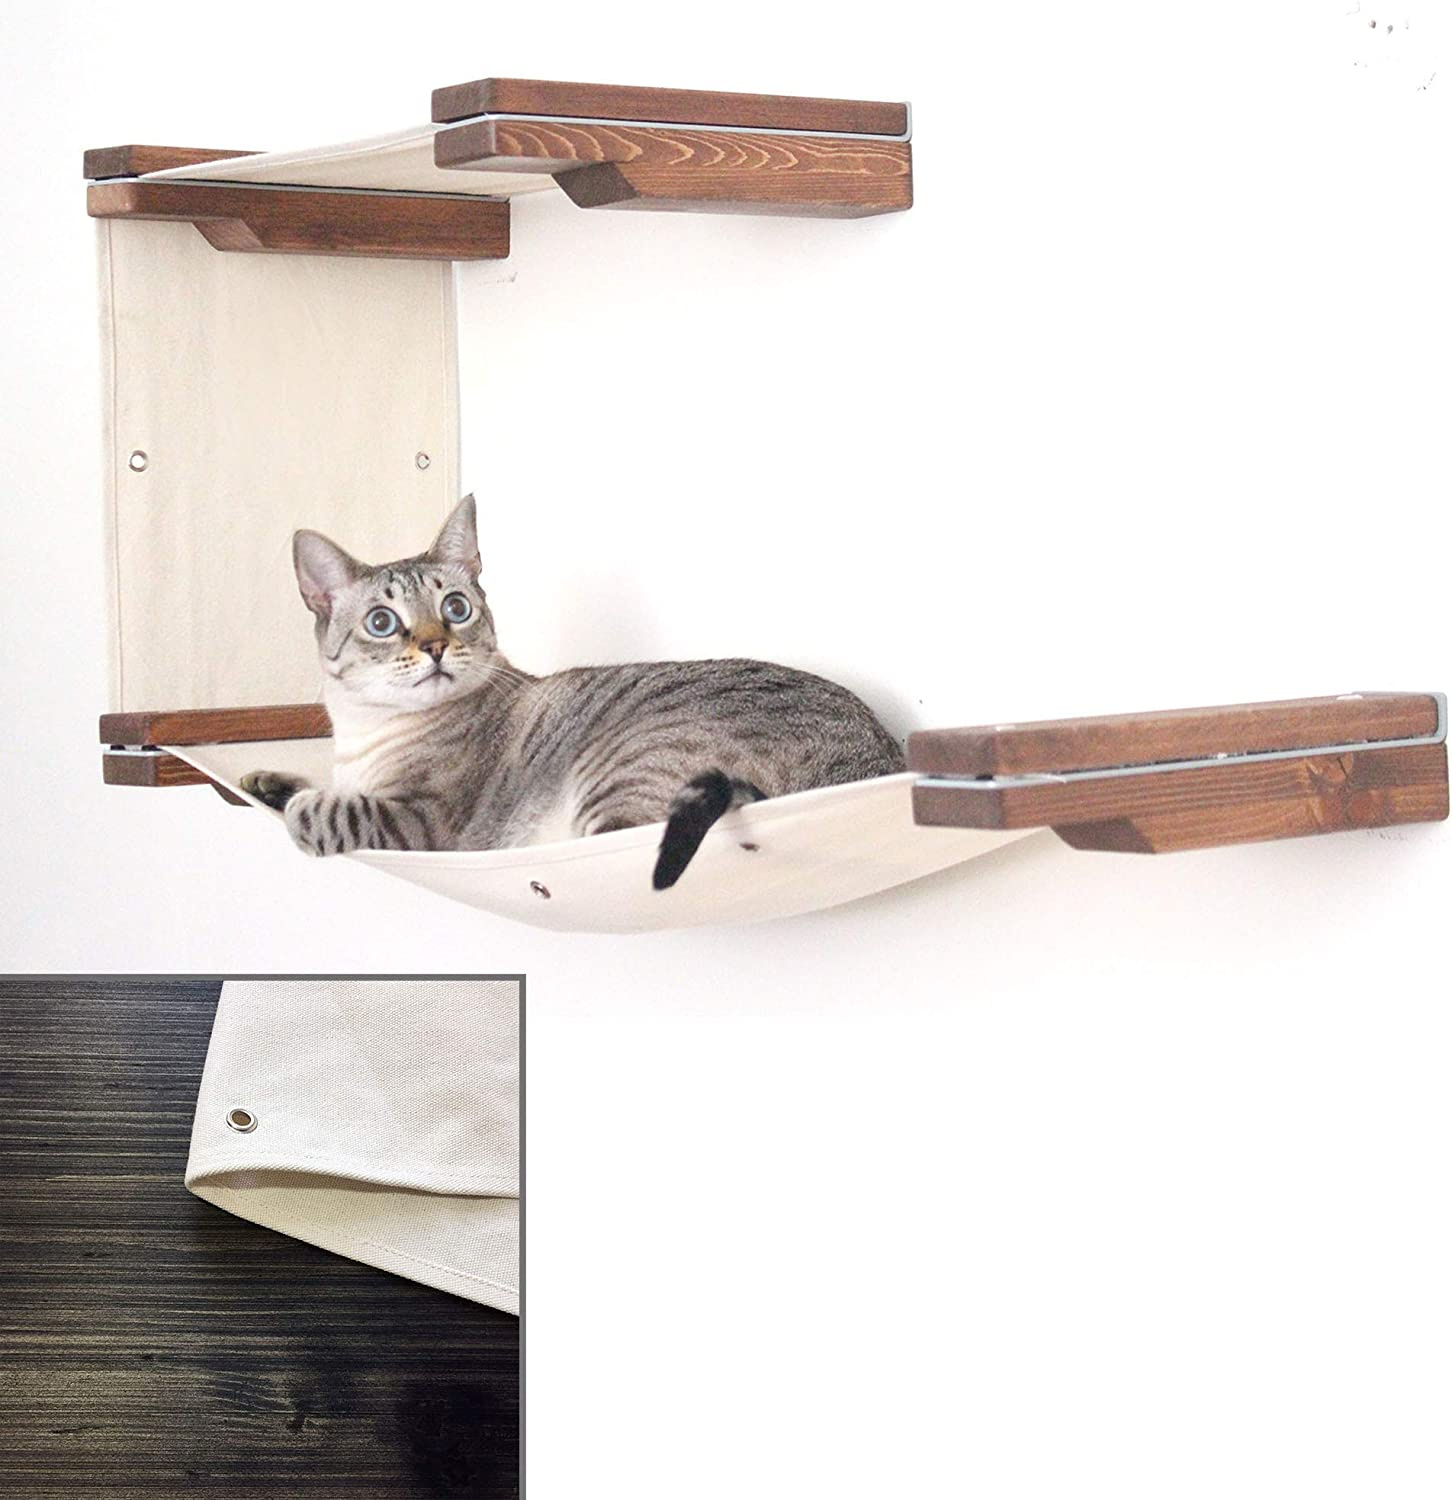 CatastrophiCreations Cat Mod Double Decker WallMounted Hammock Lounger Shelving for Cats  Onyx Natural